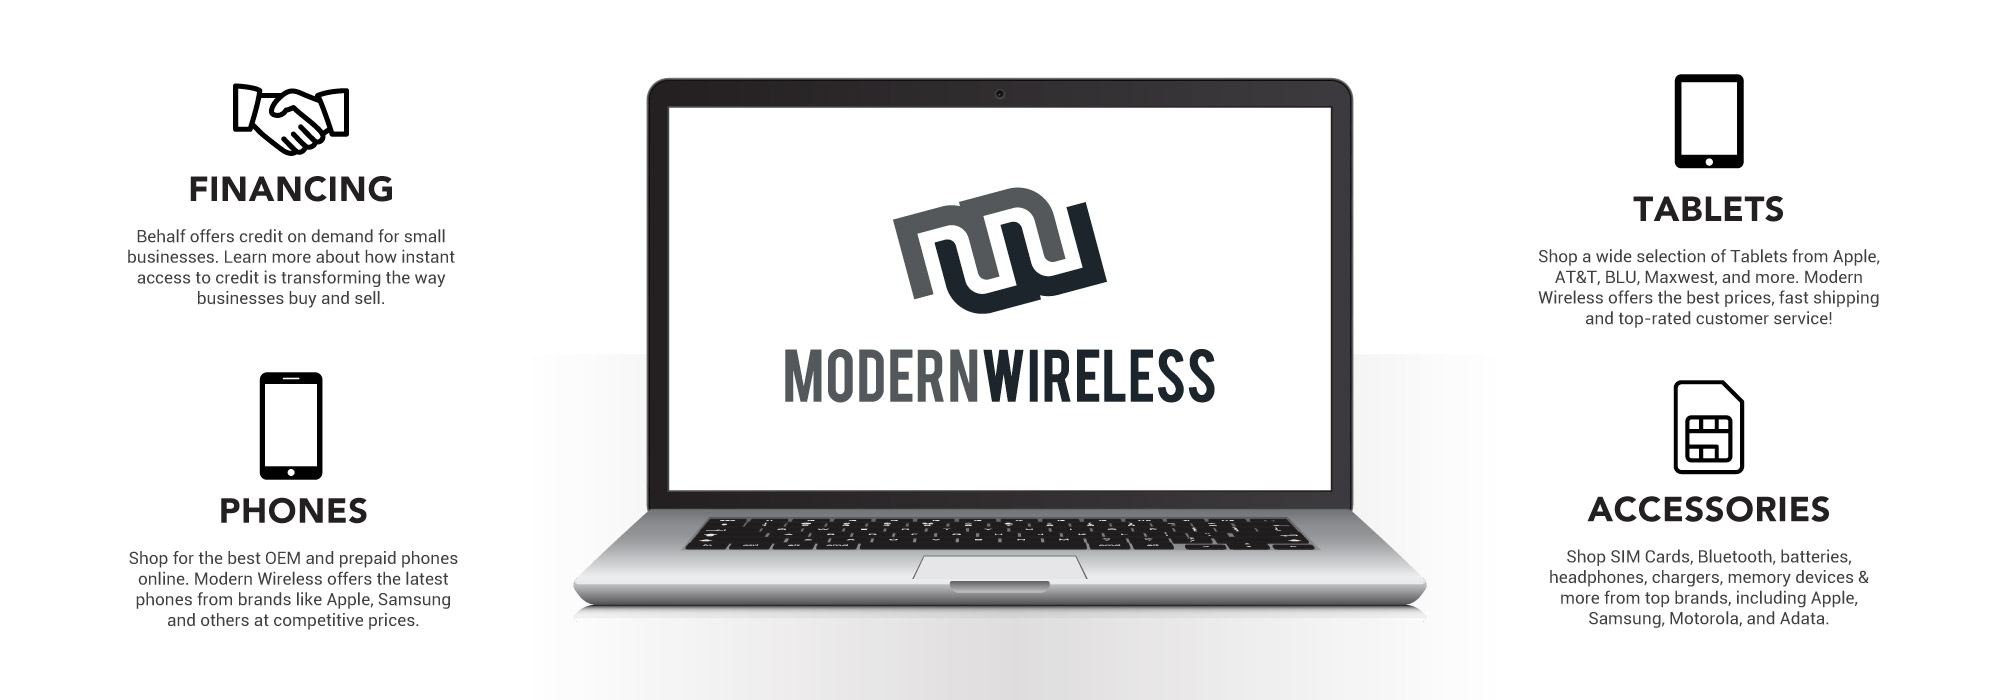 Modern Wireless